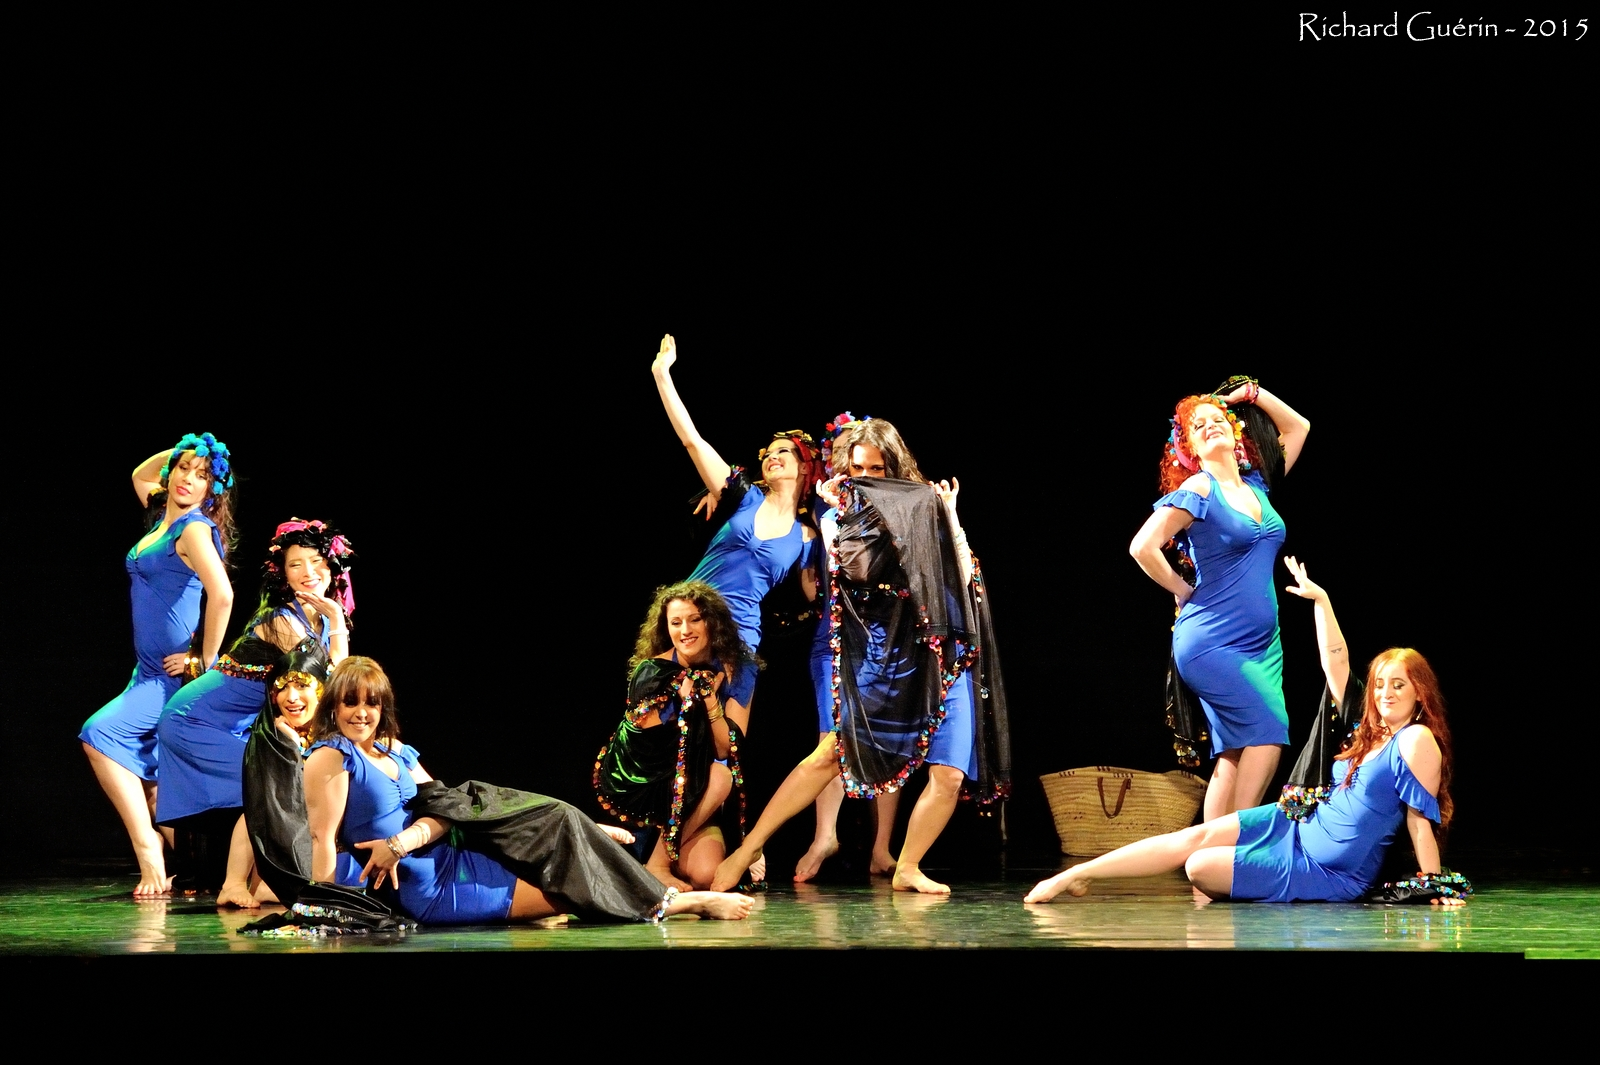 spectacle_love_of_dance_28-02-2015_3897-rec.jpg